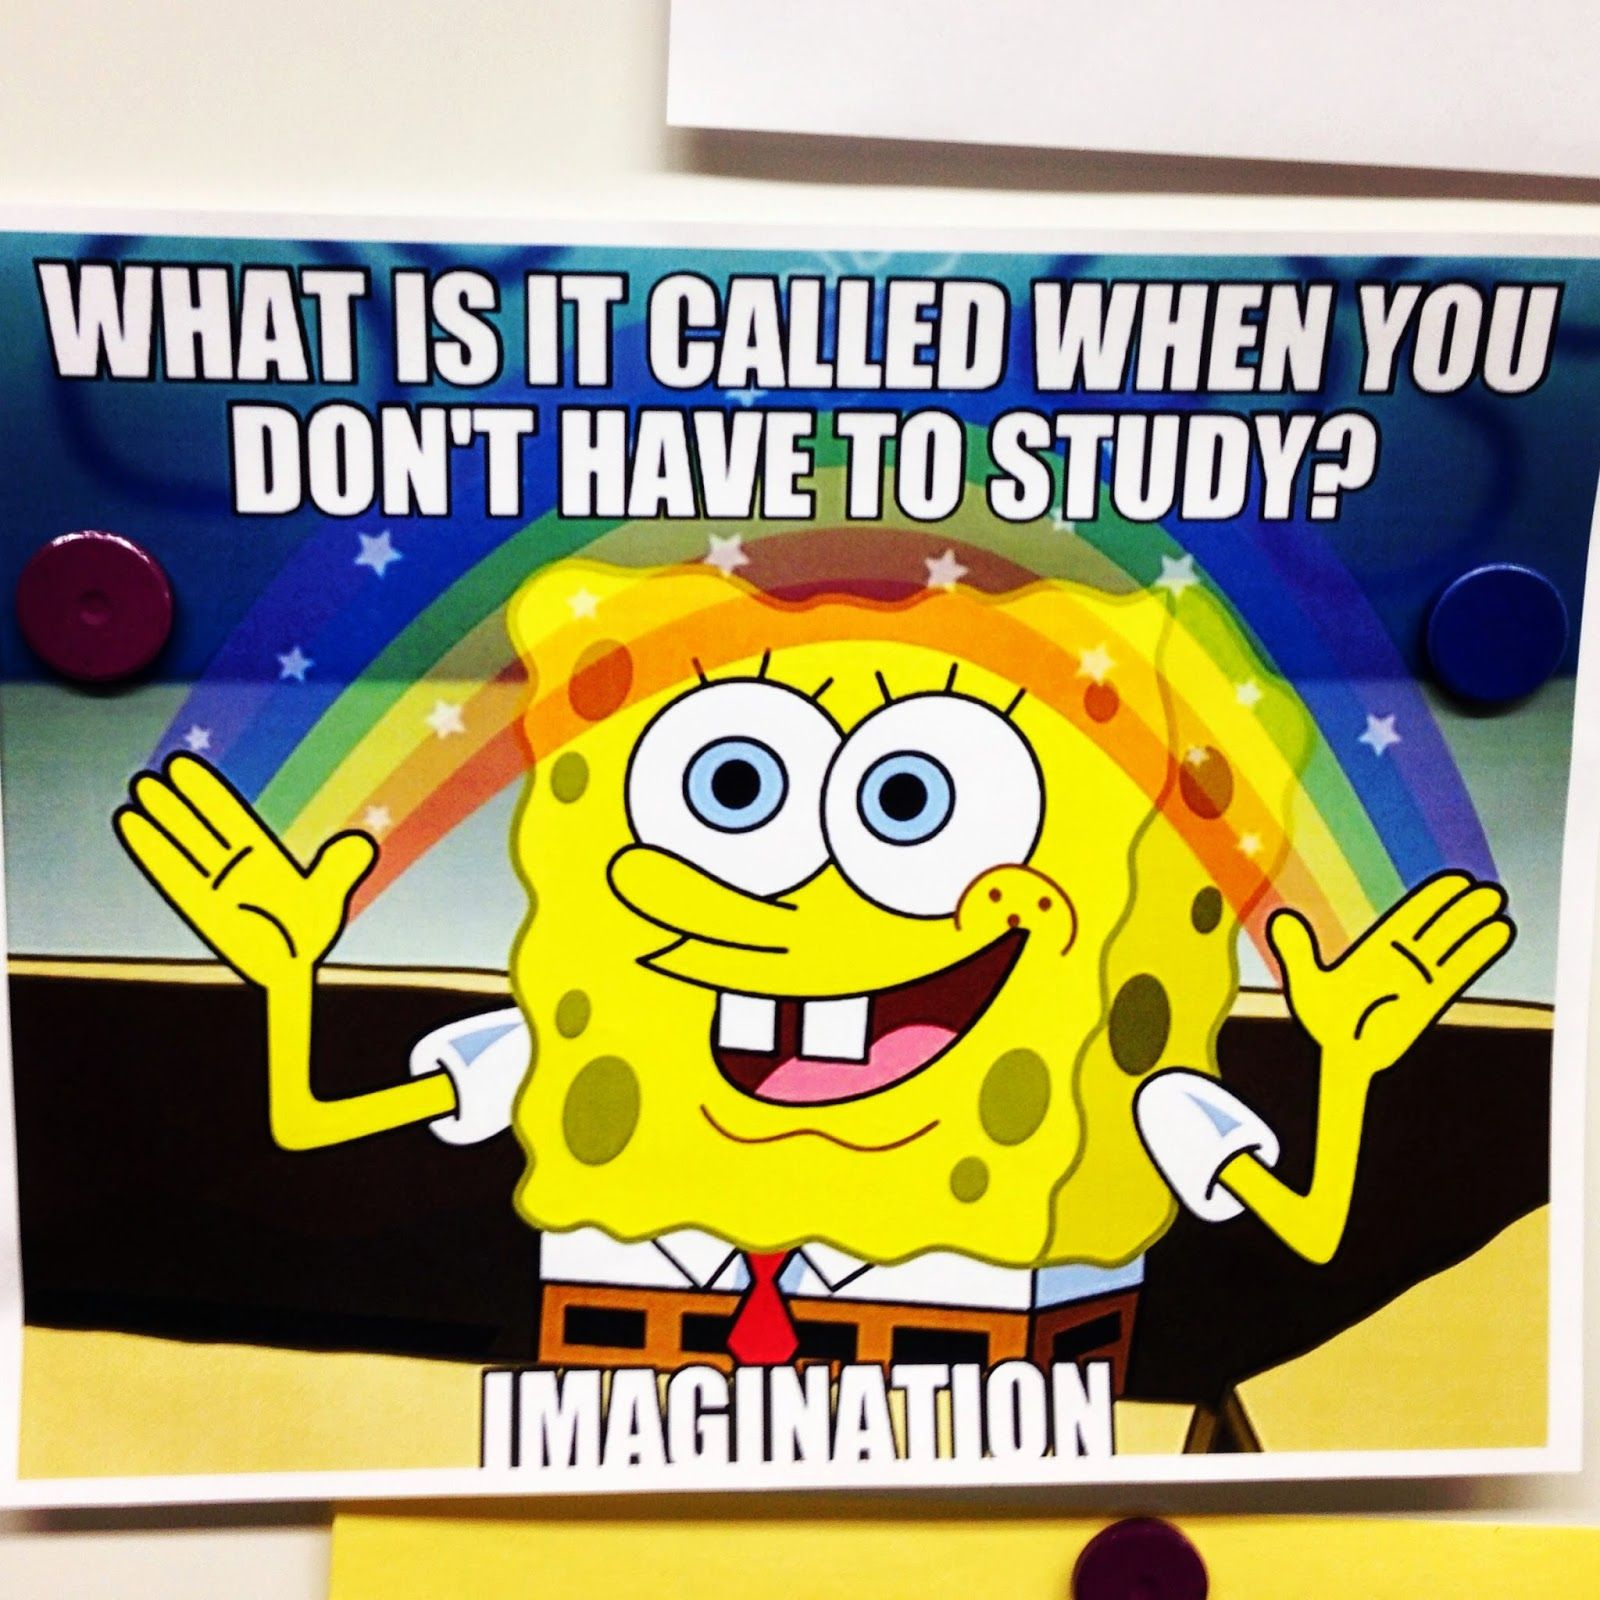 What is it called when you don't have to study